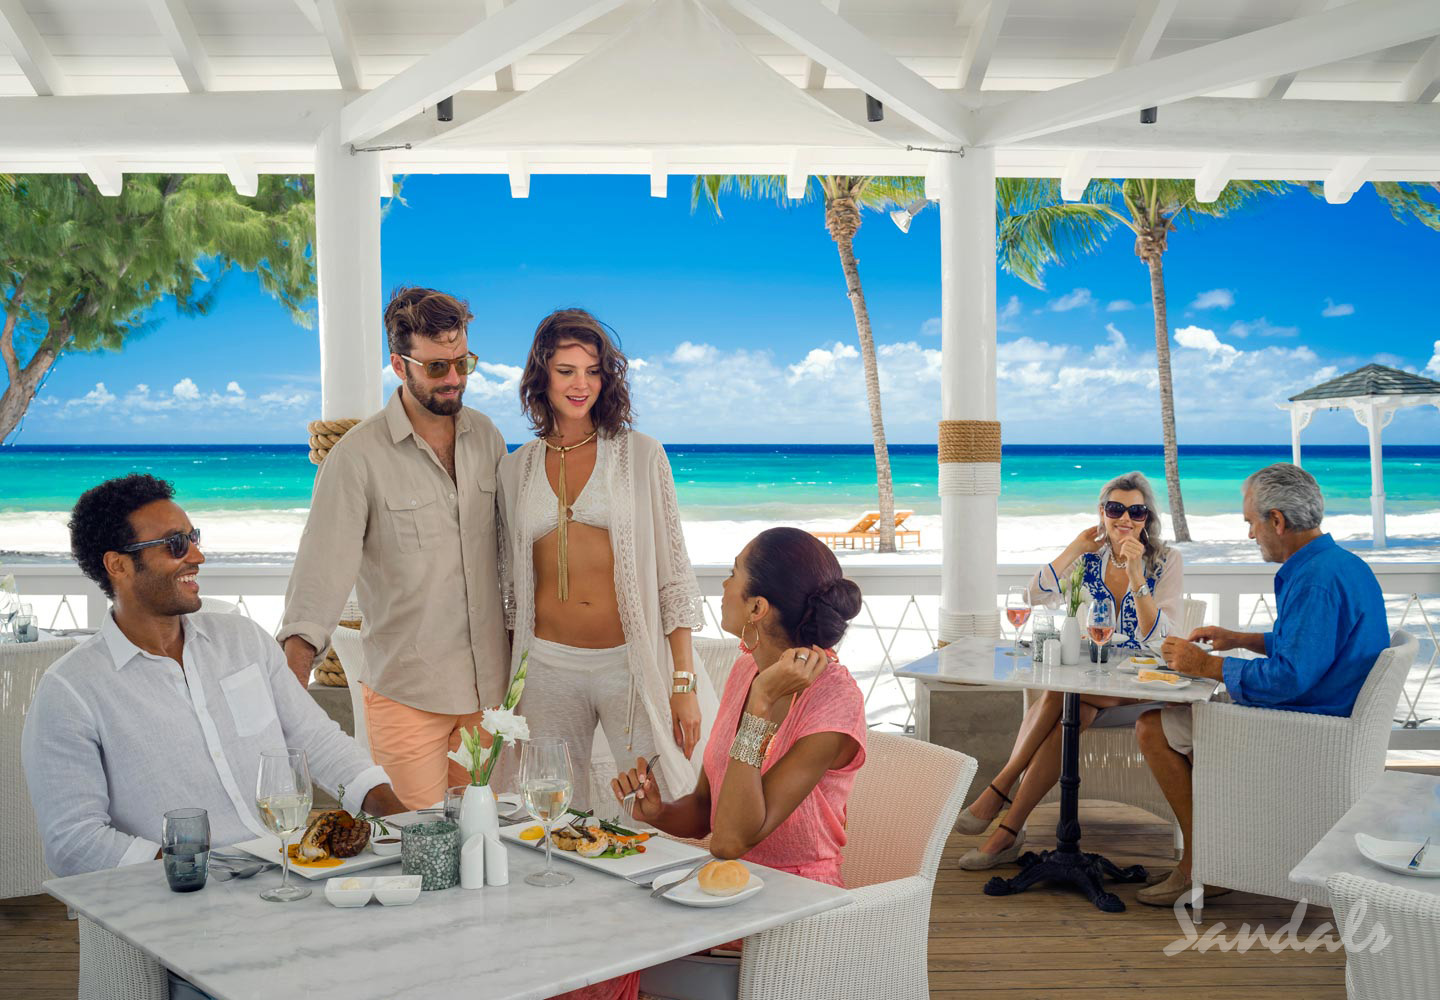 Travel Agency All-Inclusive Resort Sandals Barbados 23